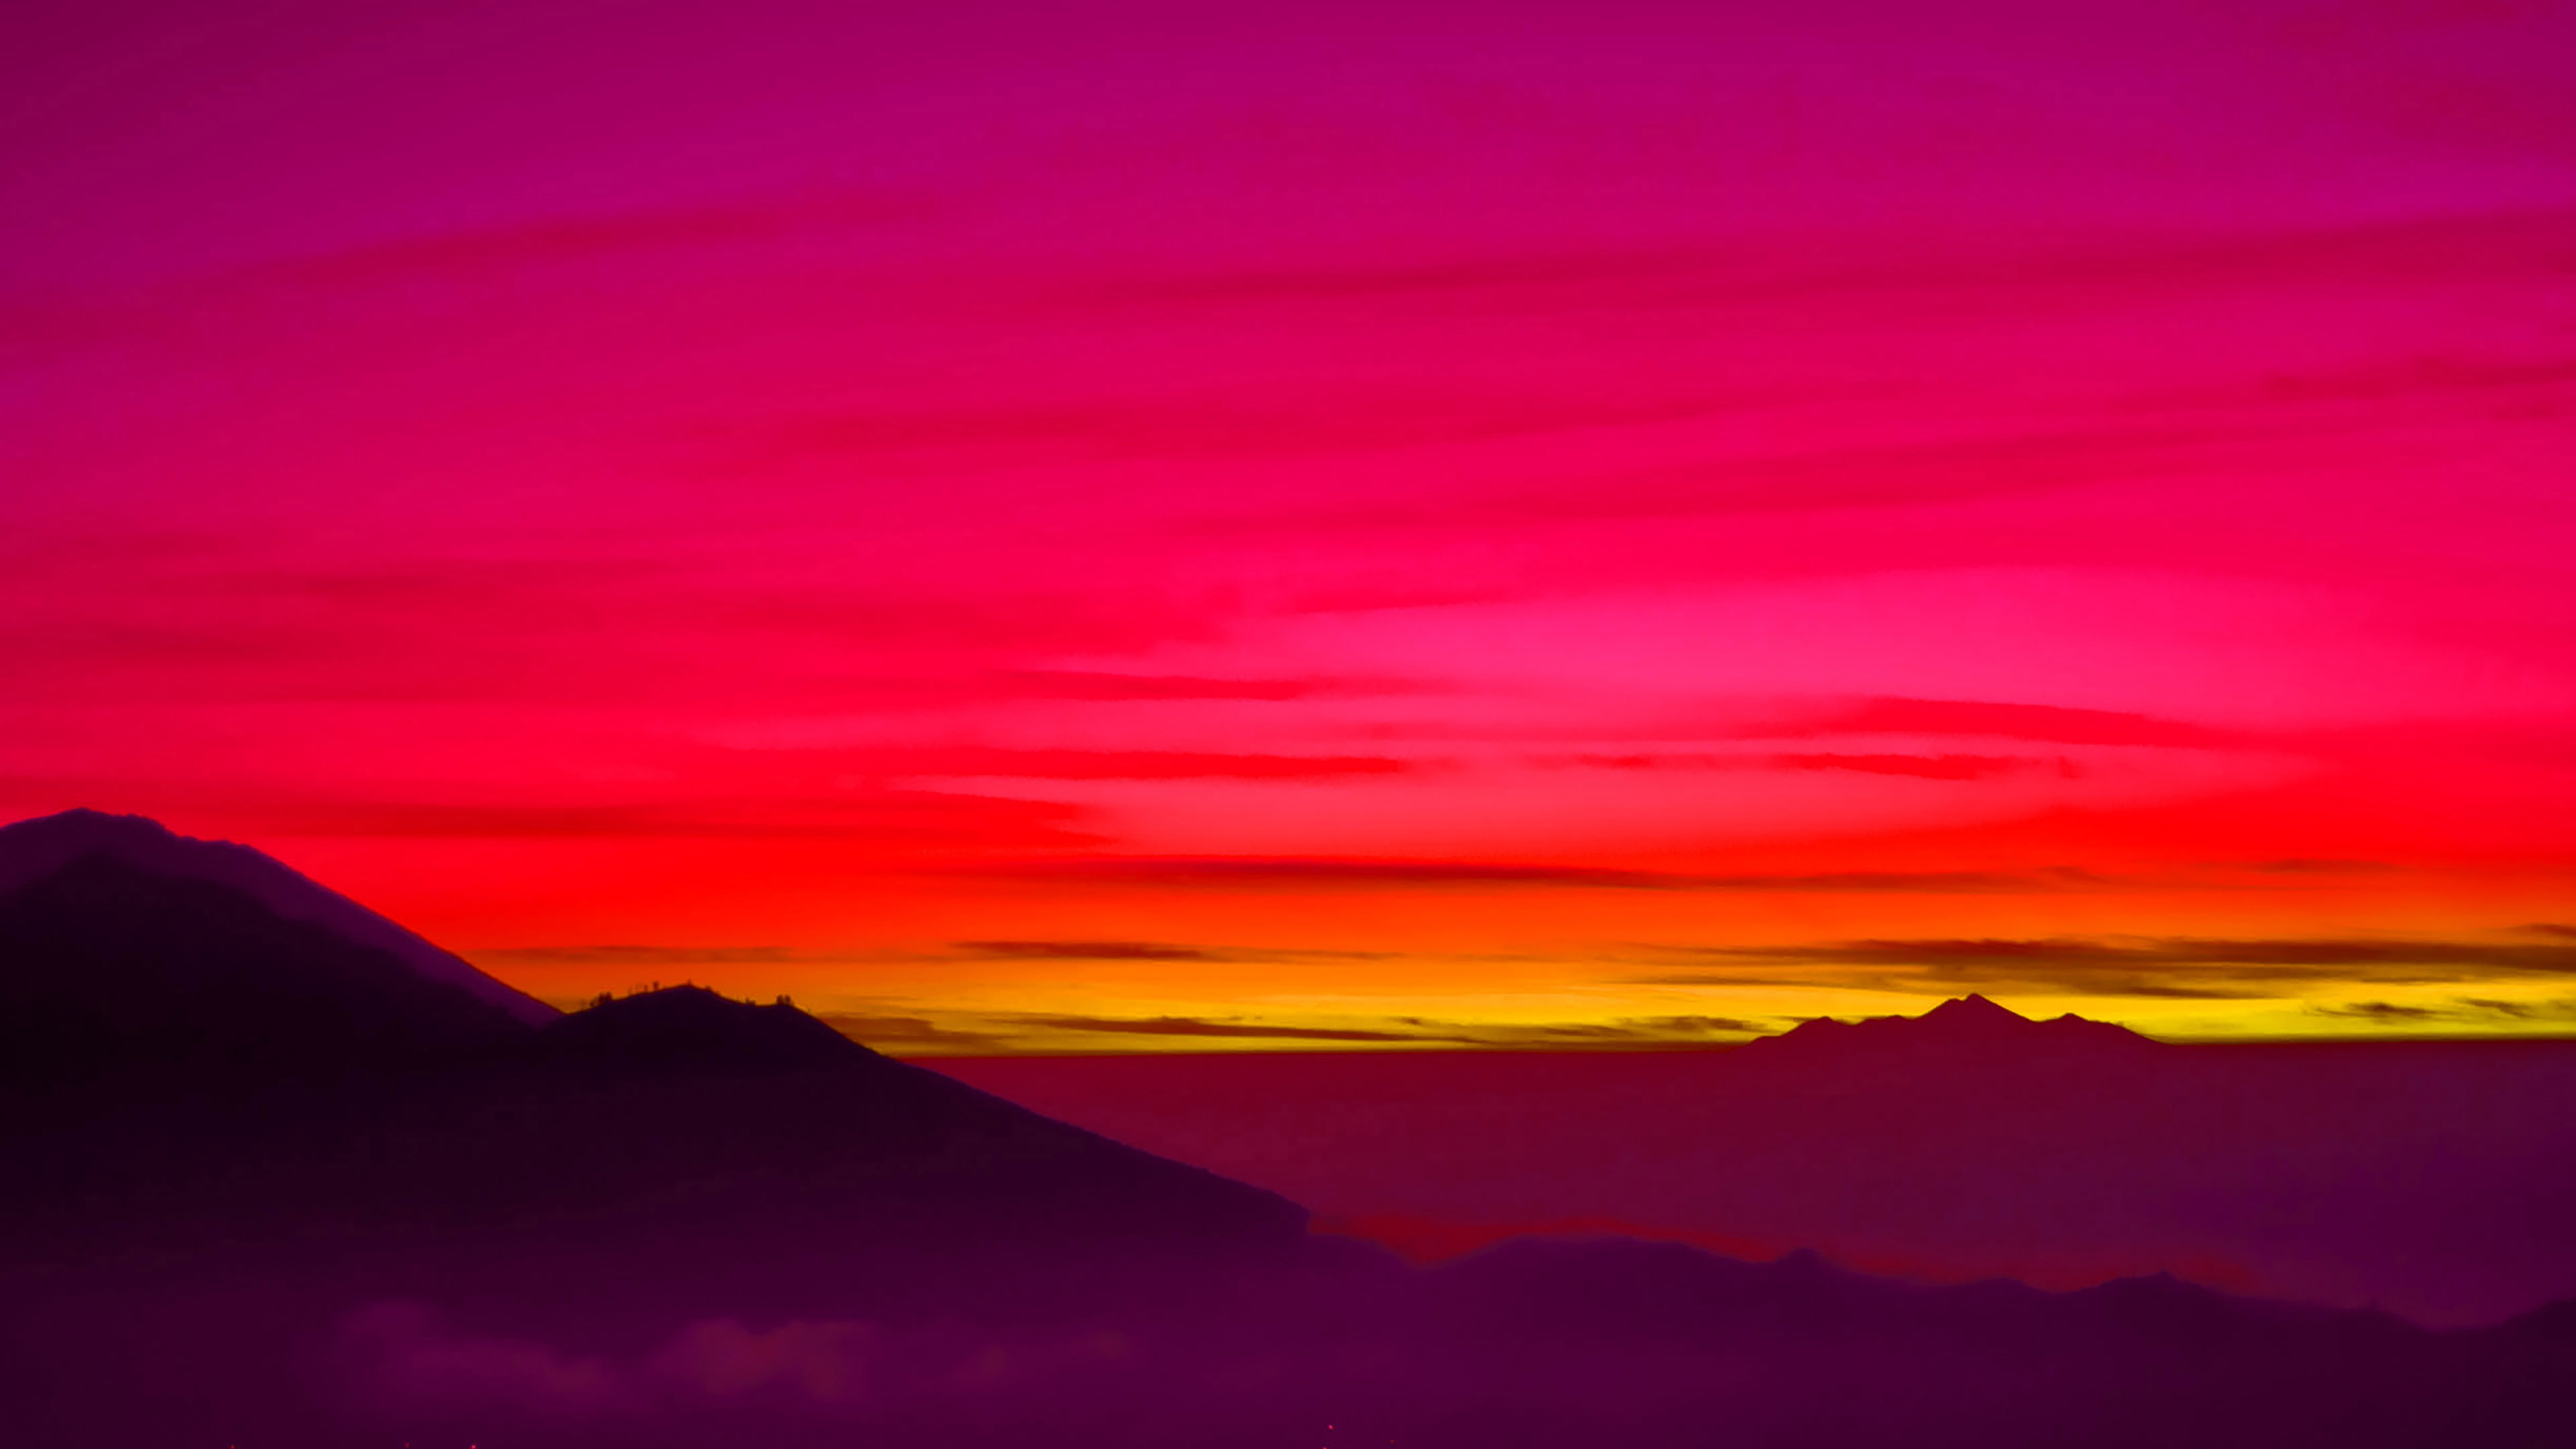 mc97-wallpaper-red-balinese-dream-sea-mountain-sunset ...